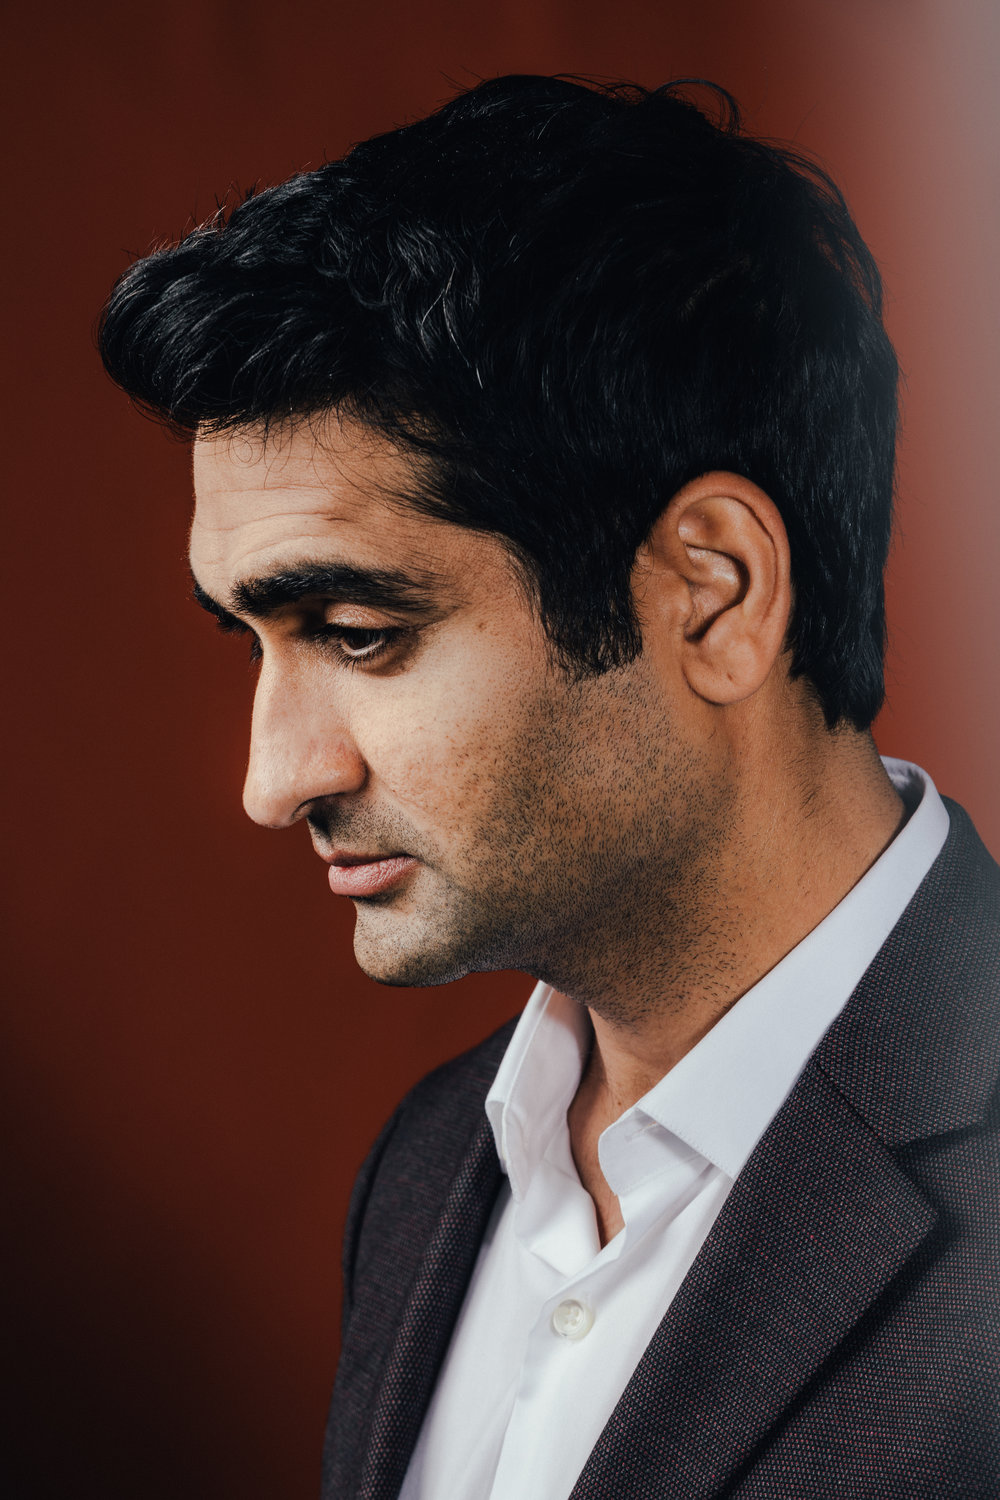 Kumail Nanjiani for The New York Times